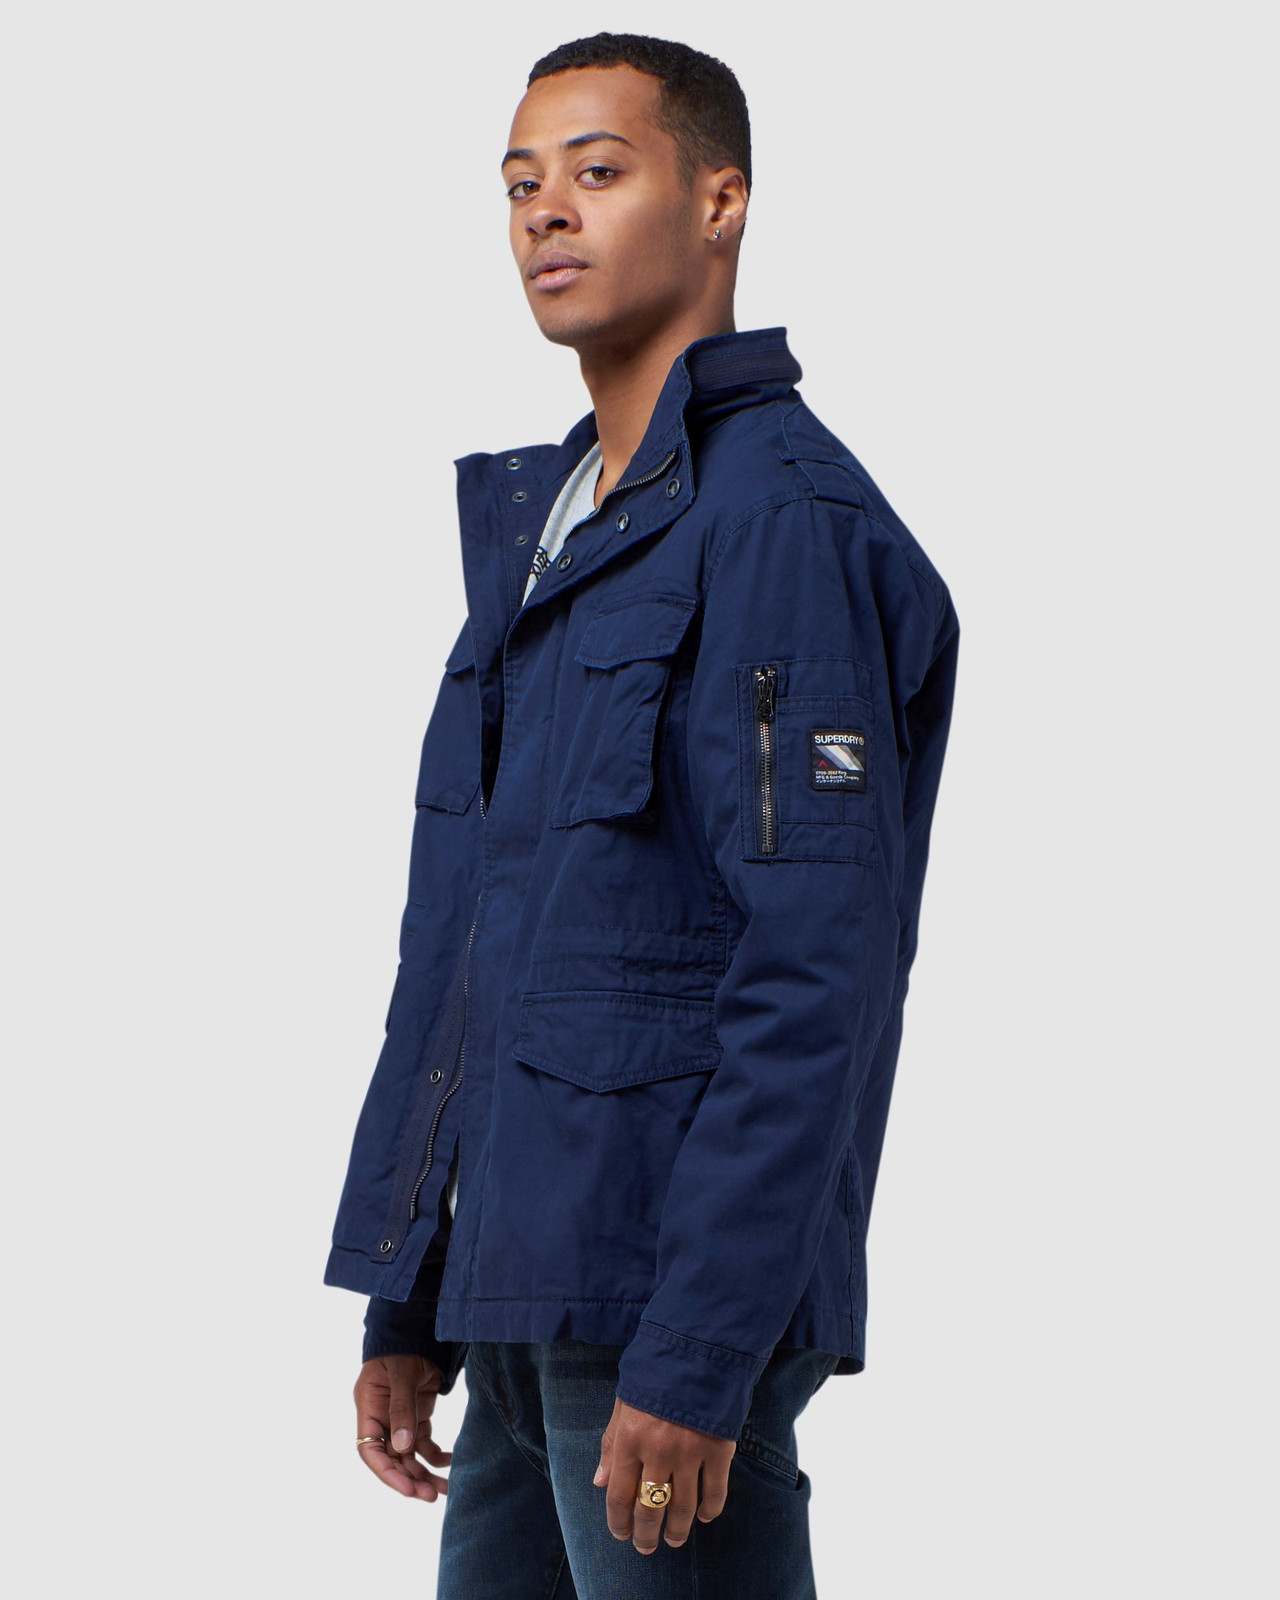 Superdry Mens CLASSIC RECRUIT JACKET Navy Military Jackets 2